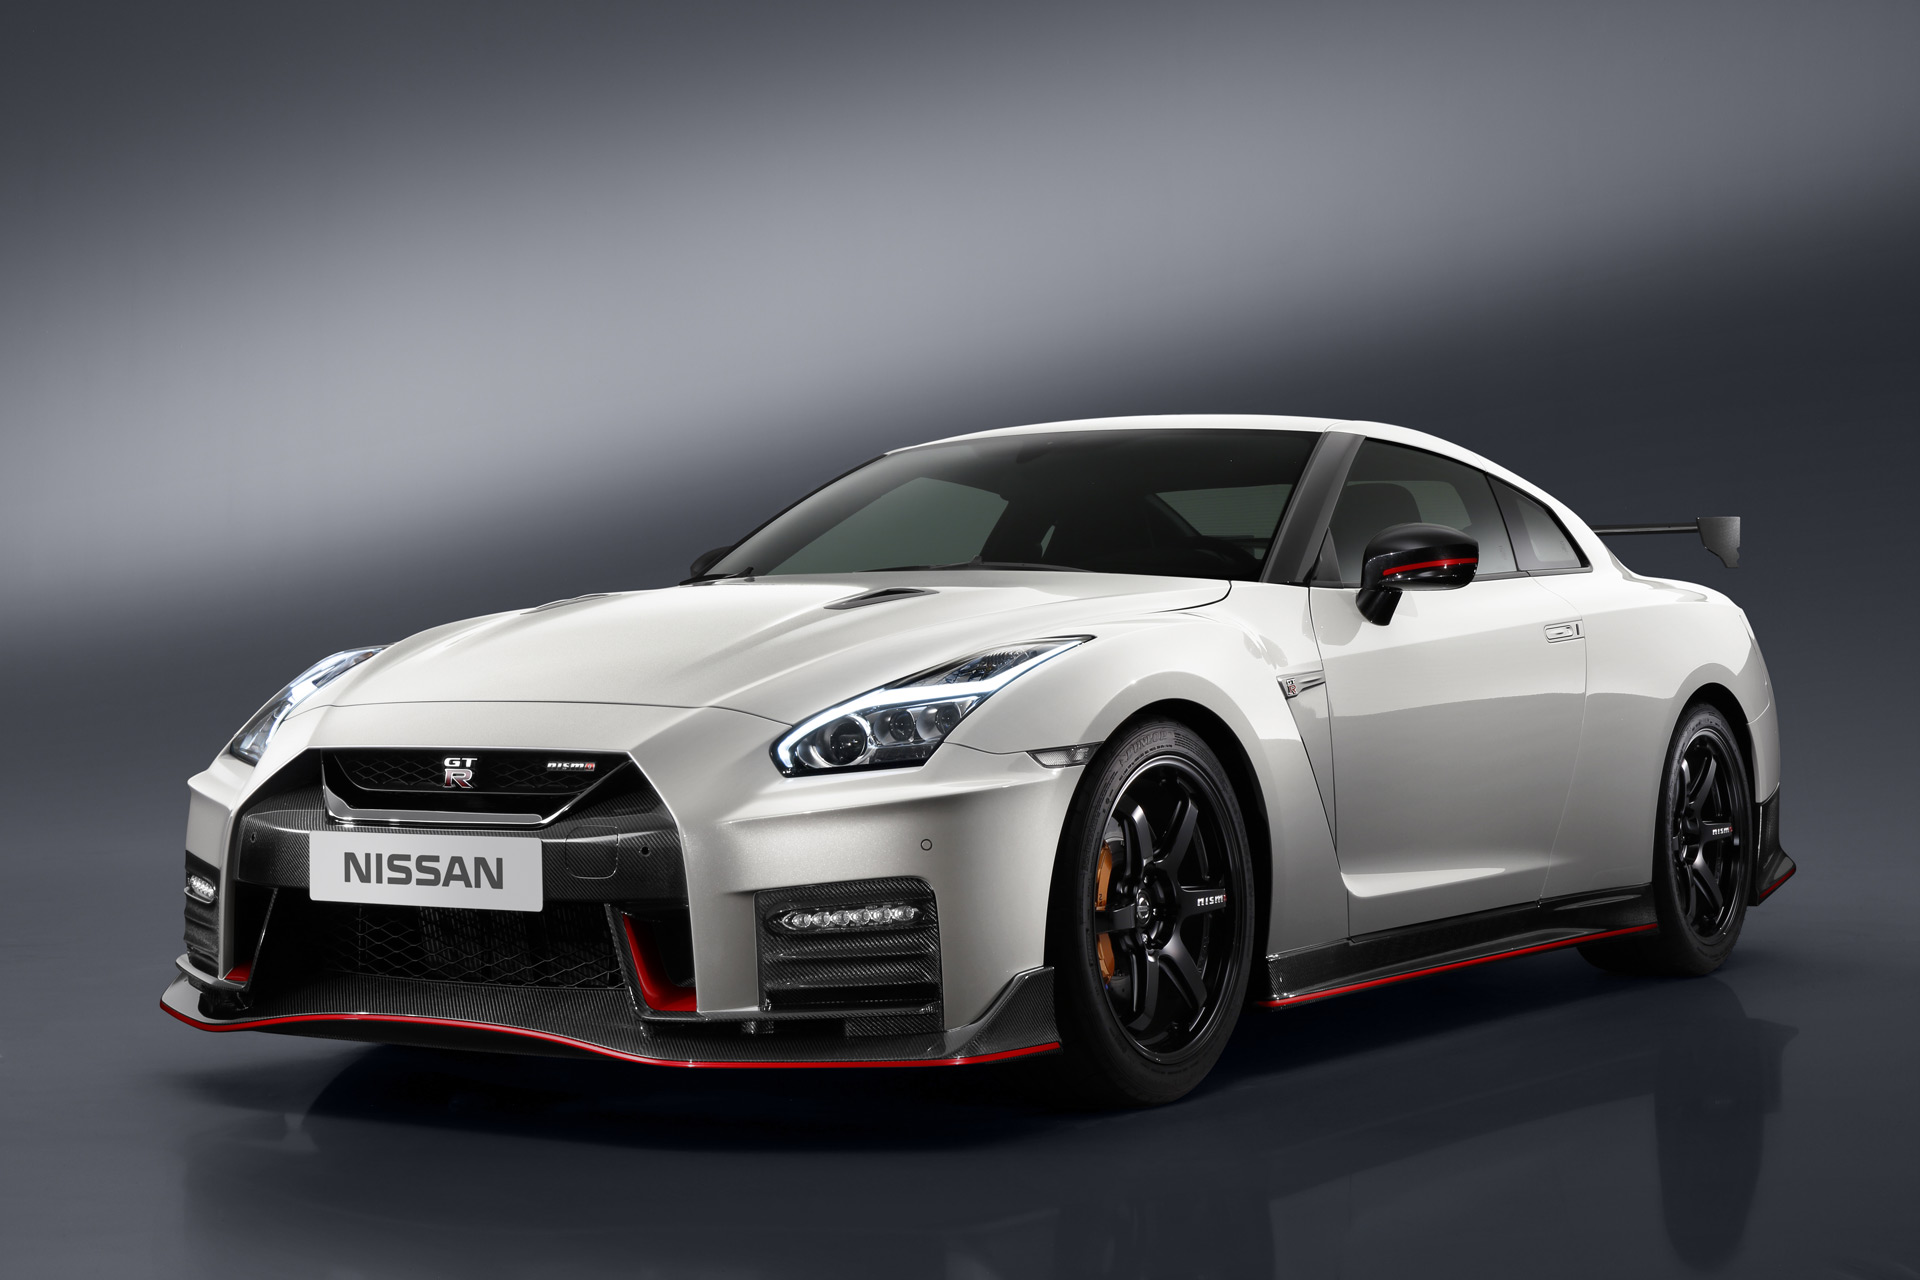 259364f7cb428e 2017 Nissan GT-R Nismo priced from $176,585